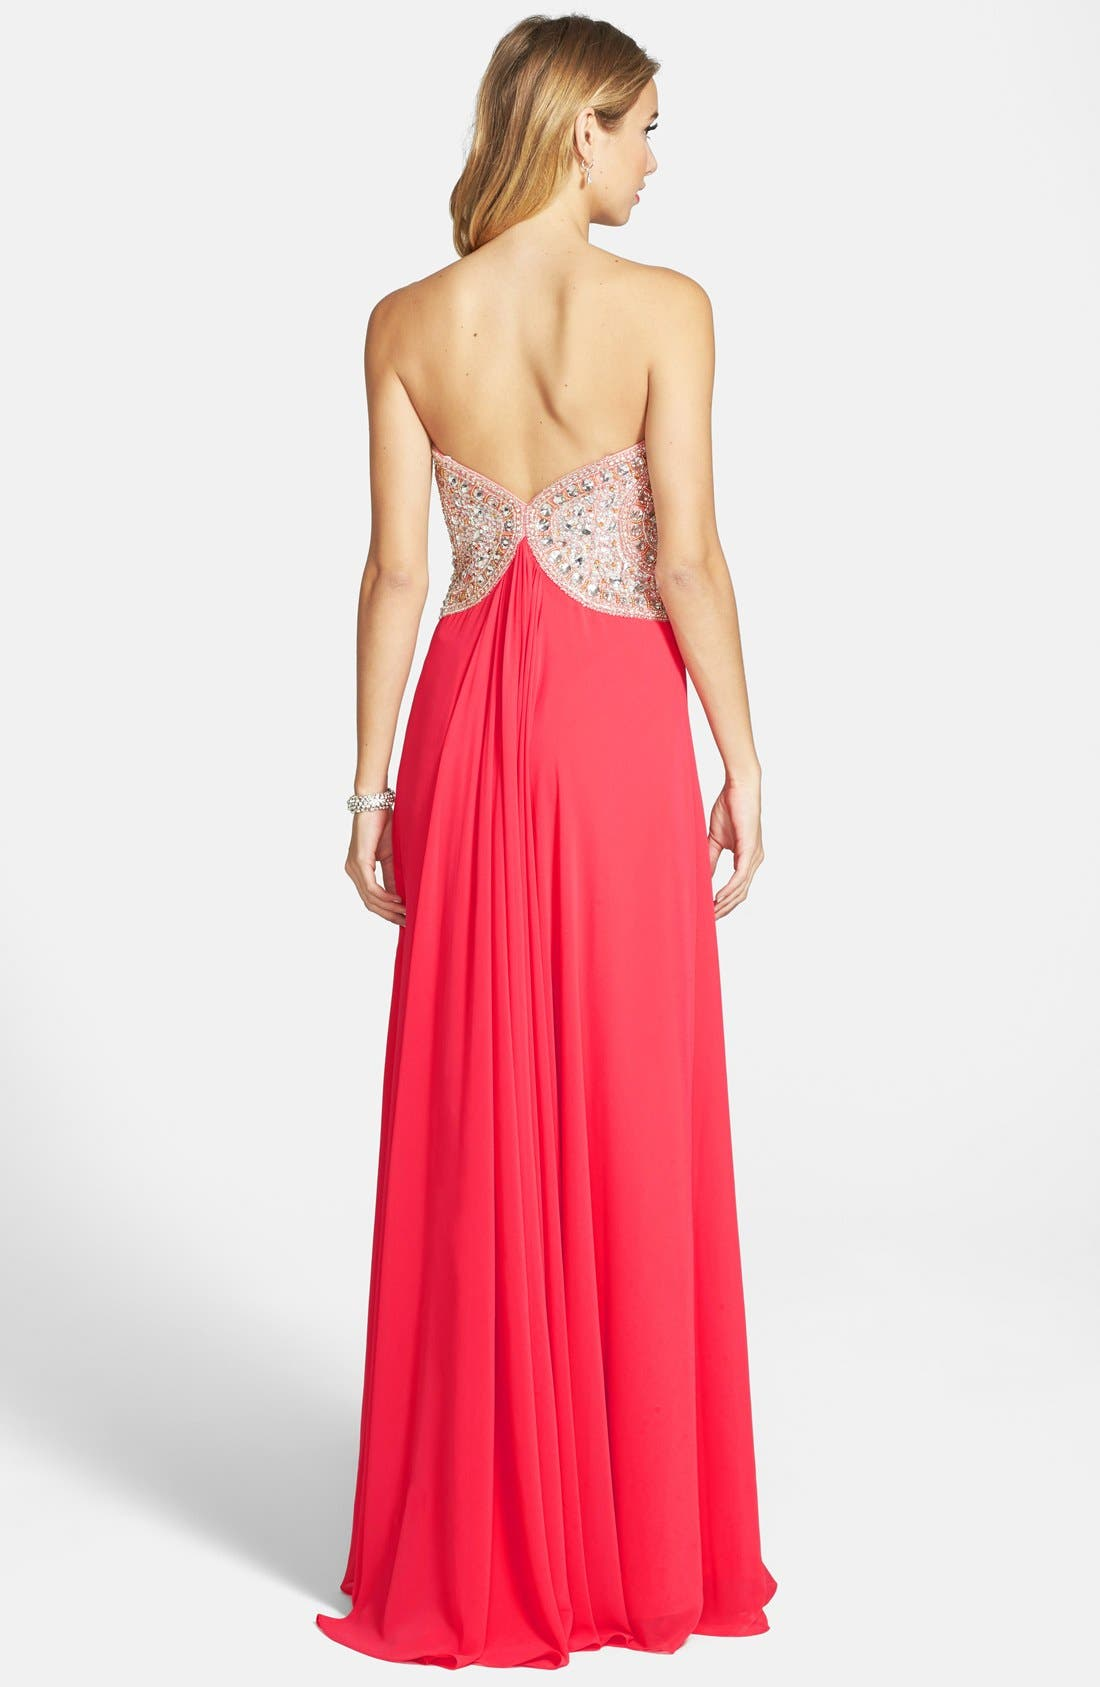 TERANI COUTURE, Embellished Bodice Strapless Chiffon Gown, Alternate thumbnail 3, color, 950